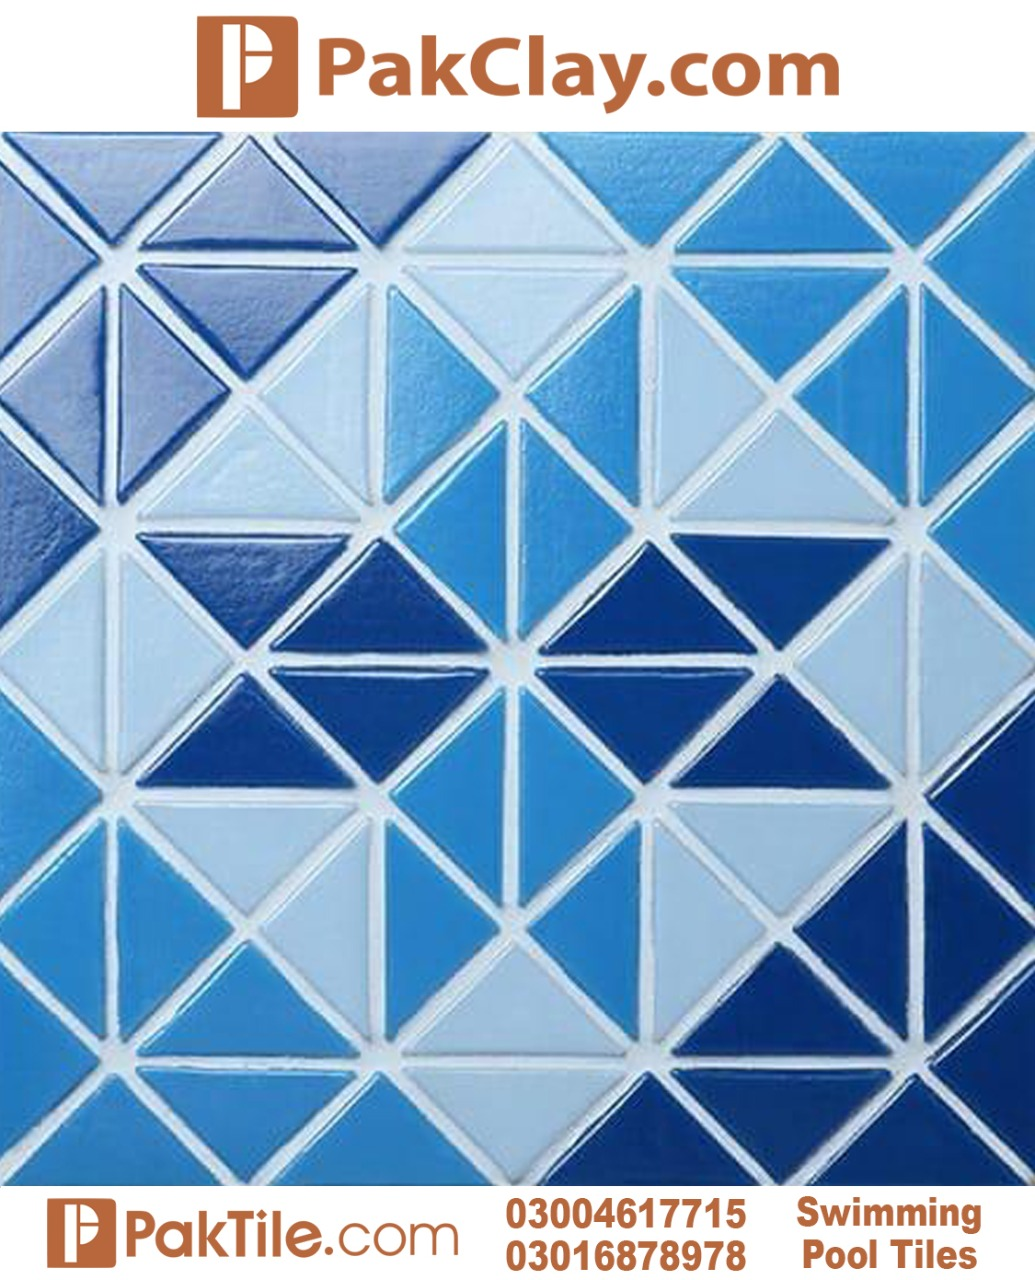 Outdoor swimming pool ceramics tiles pakistan